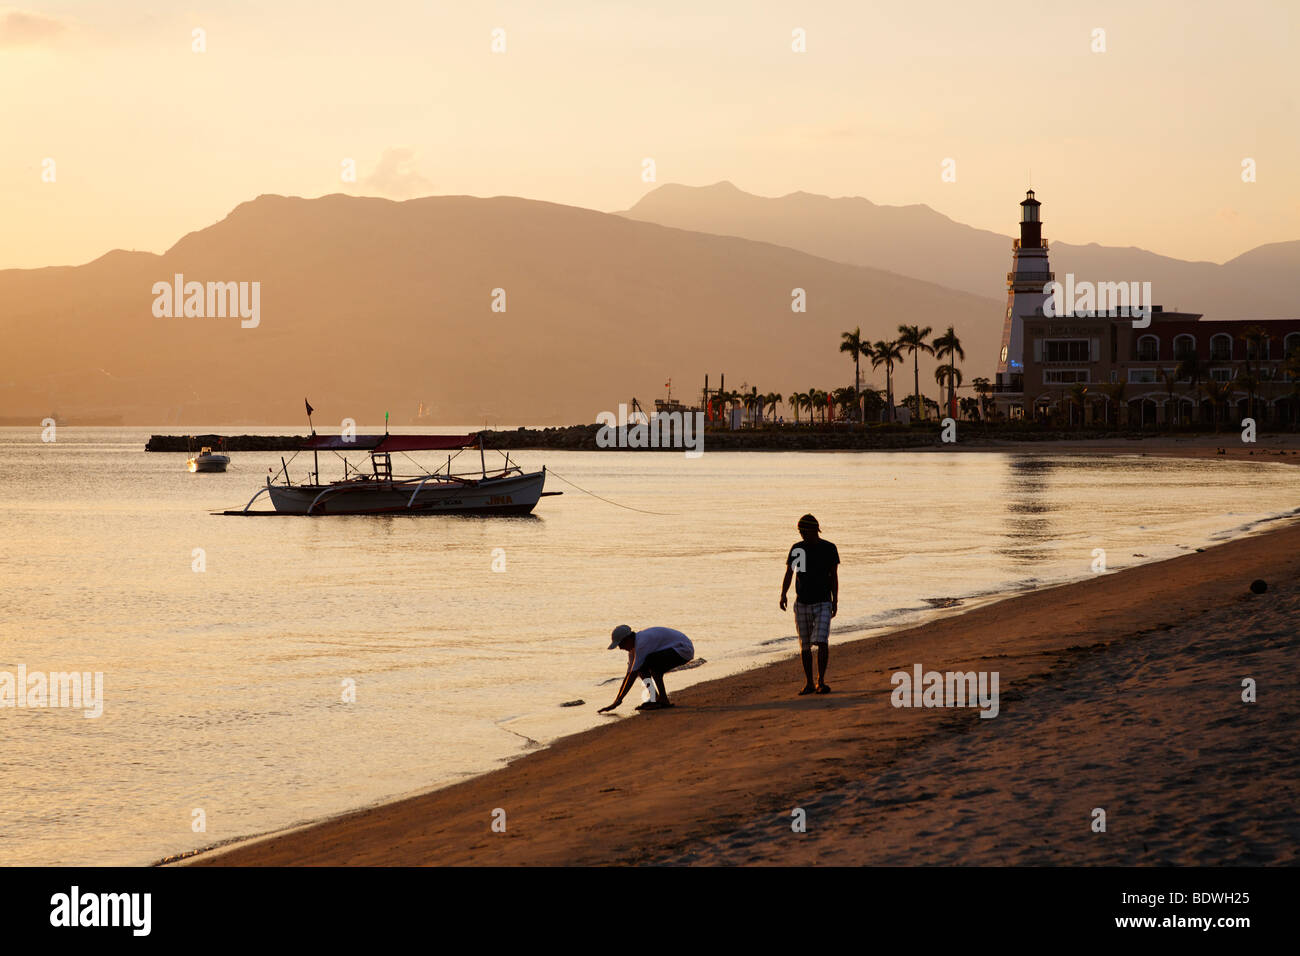 People walking on the beach in the evening, lighthouse, boat, banka, palm trees, romantic mood, Olongapo City, Subic - Stock Image